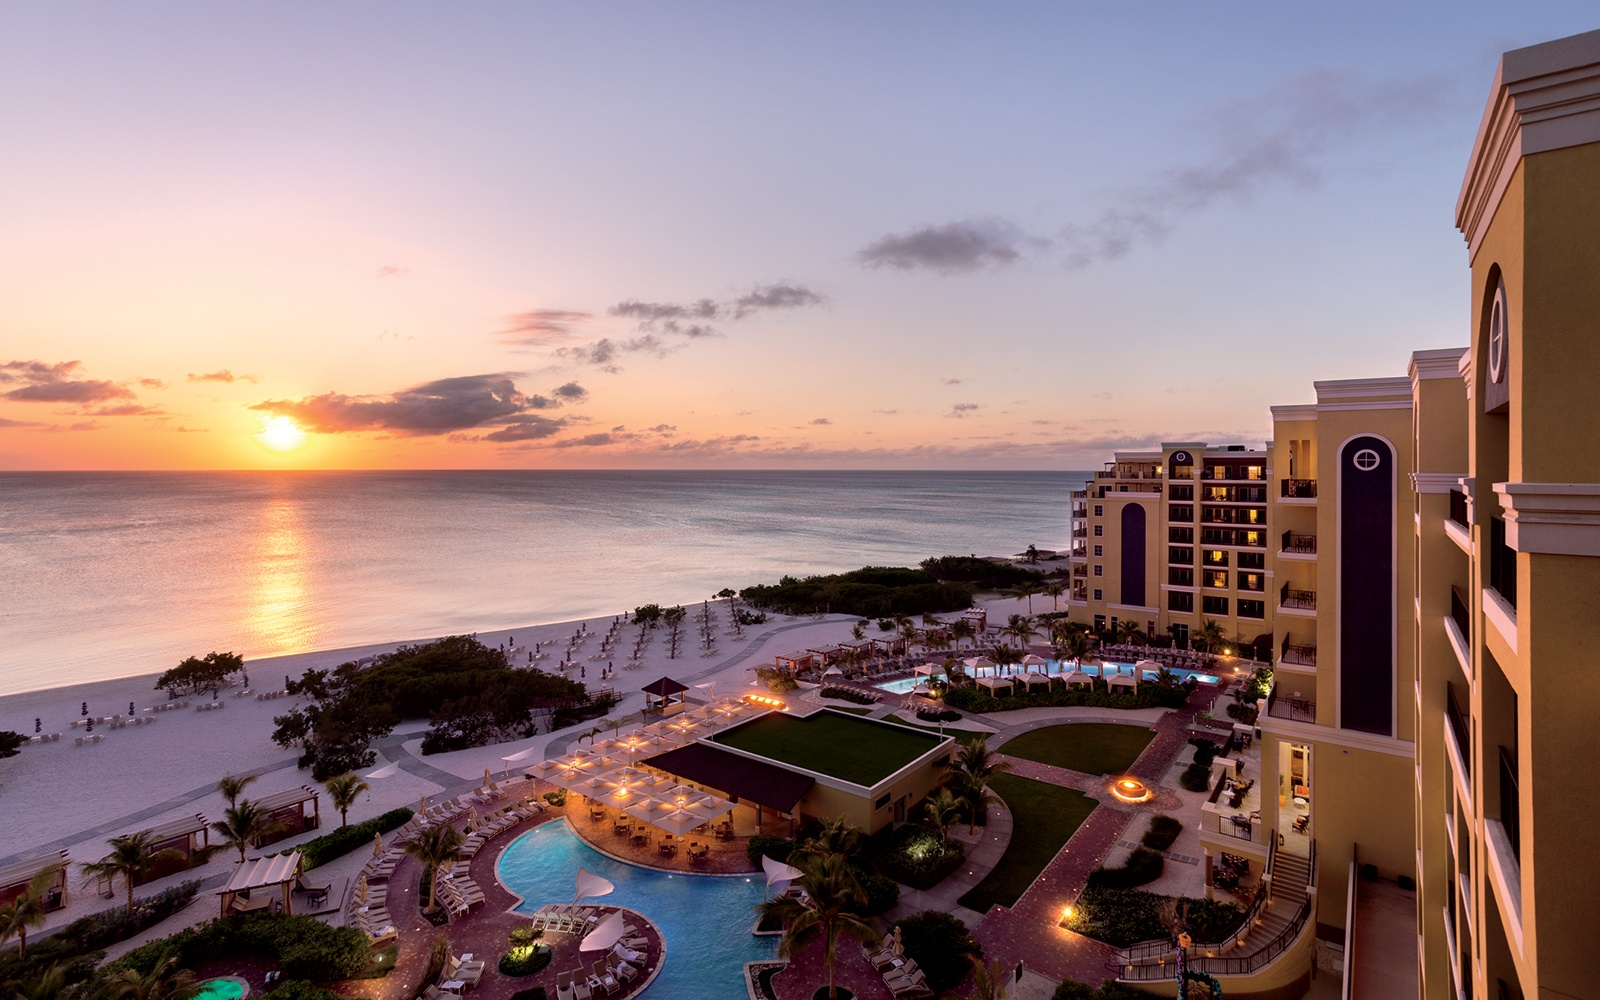 No. 11: The Ritz-Carlton, Aruba